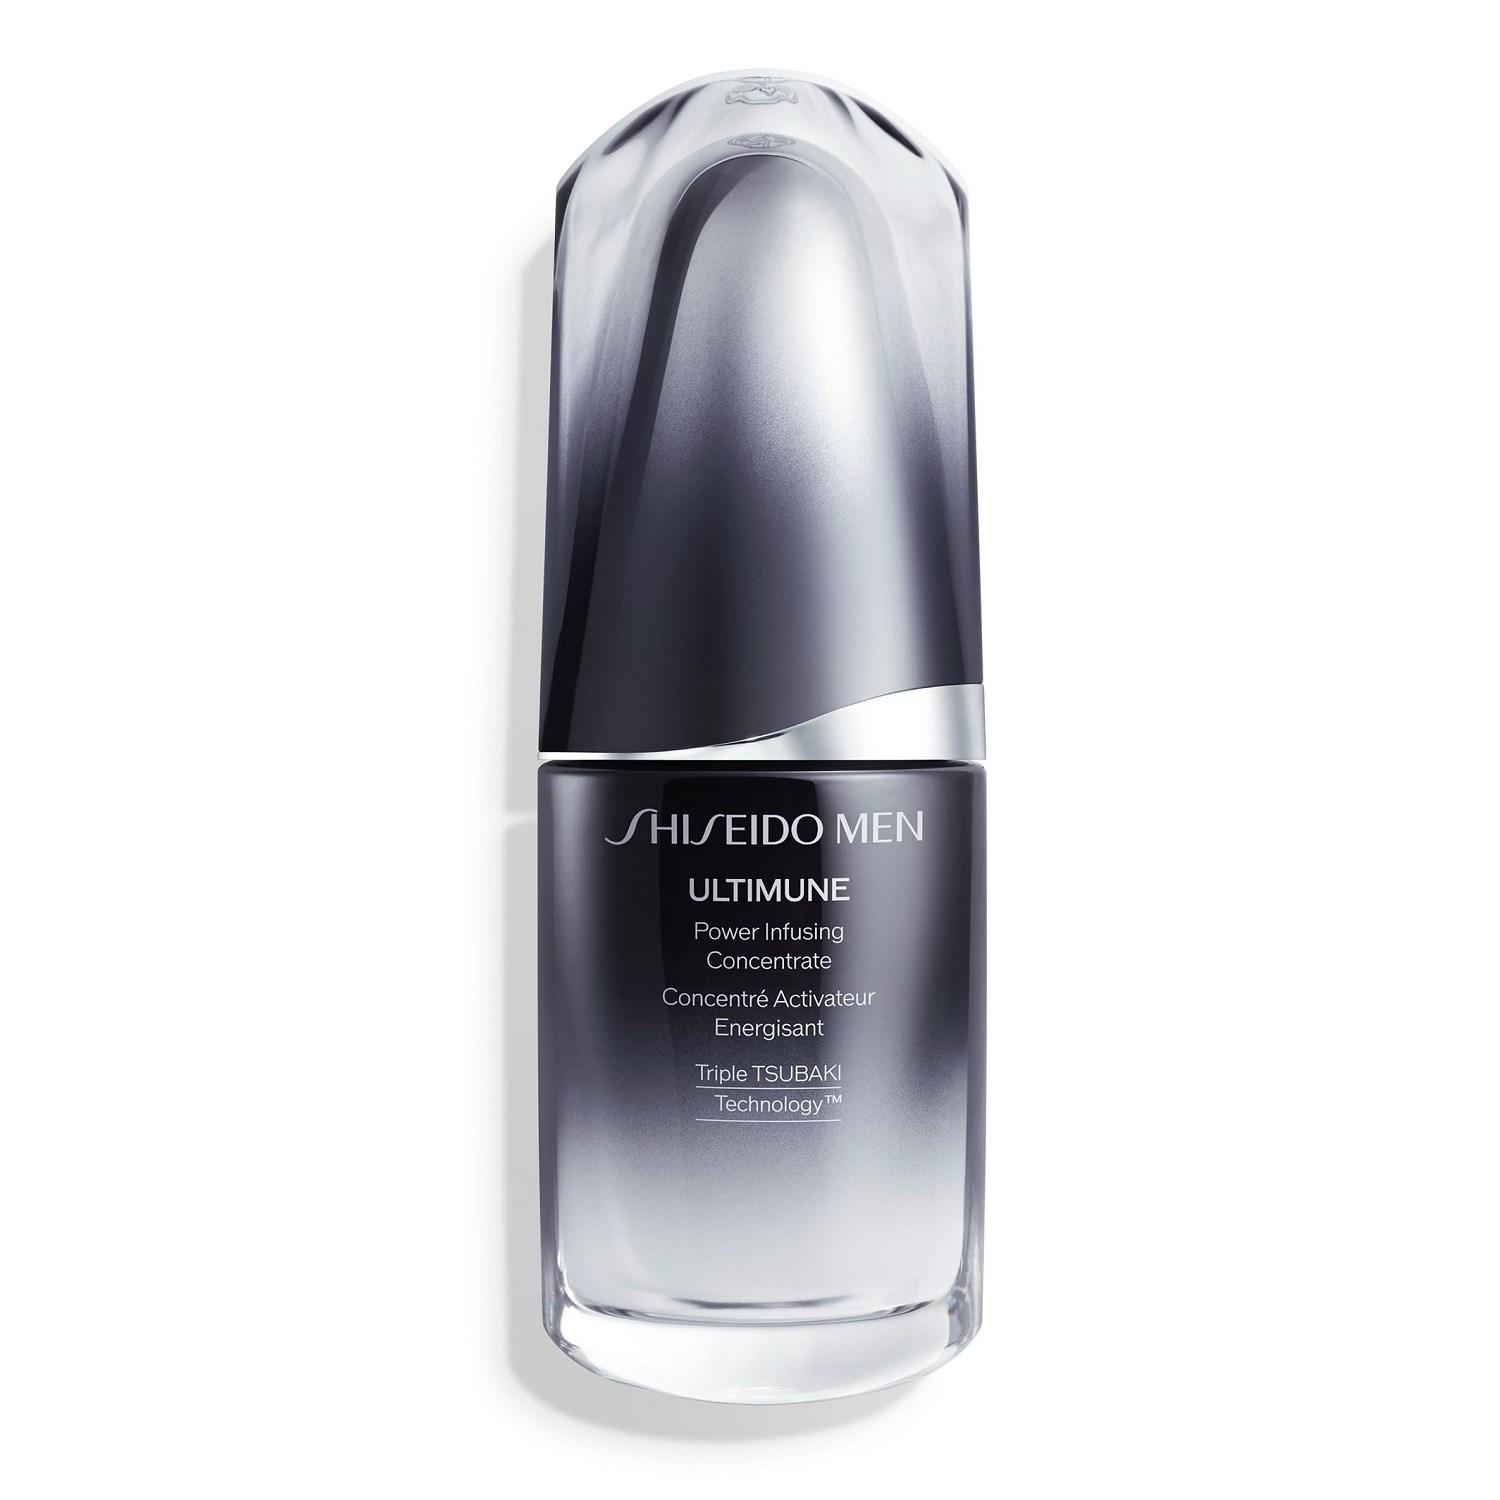 MEN ULTIMUNE POWER INFUSING CONCENTRATE 1